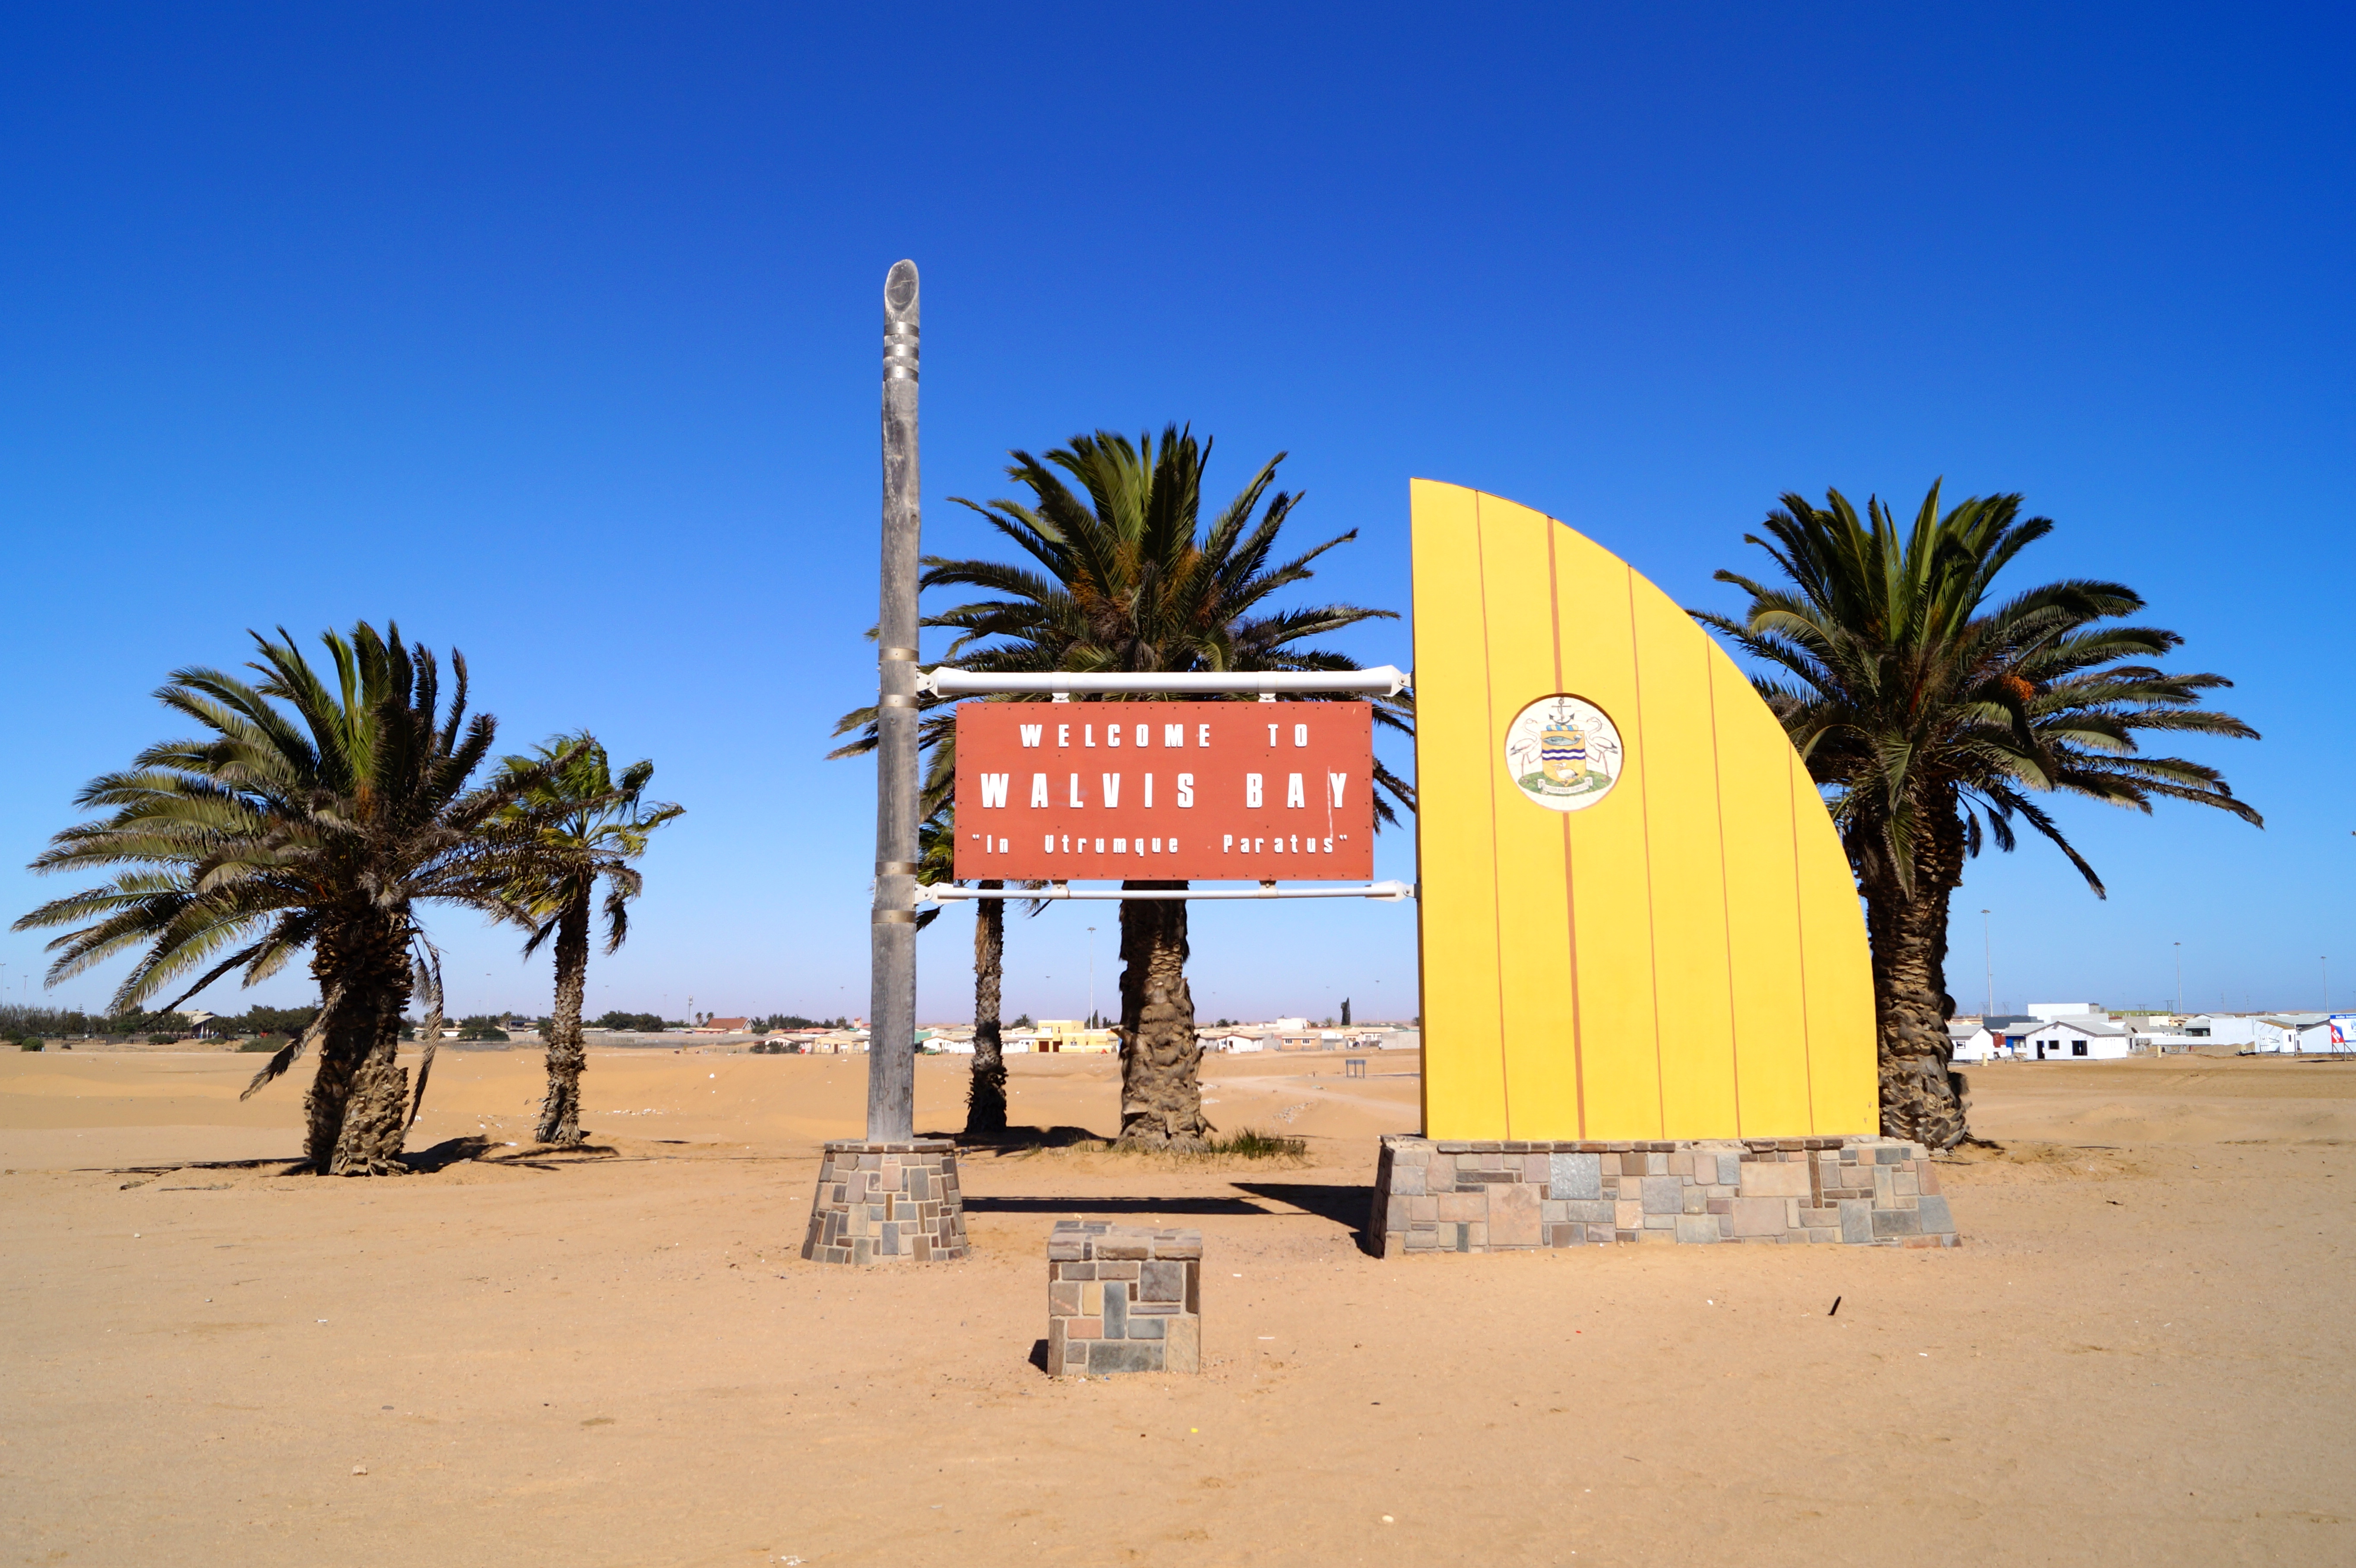 The Hope Walvis Bay, Namibia – Walvis Bay and Swakopmund | Travels Of A Flight Attendant